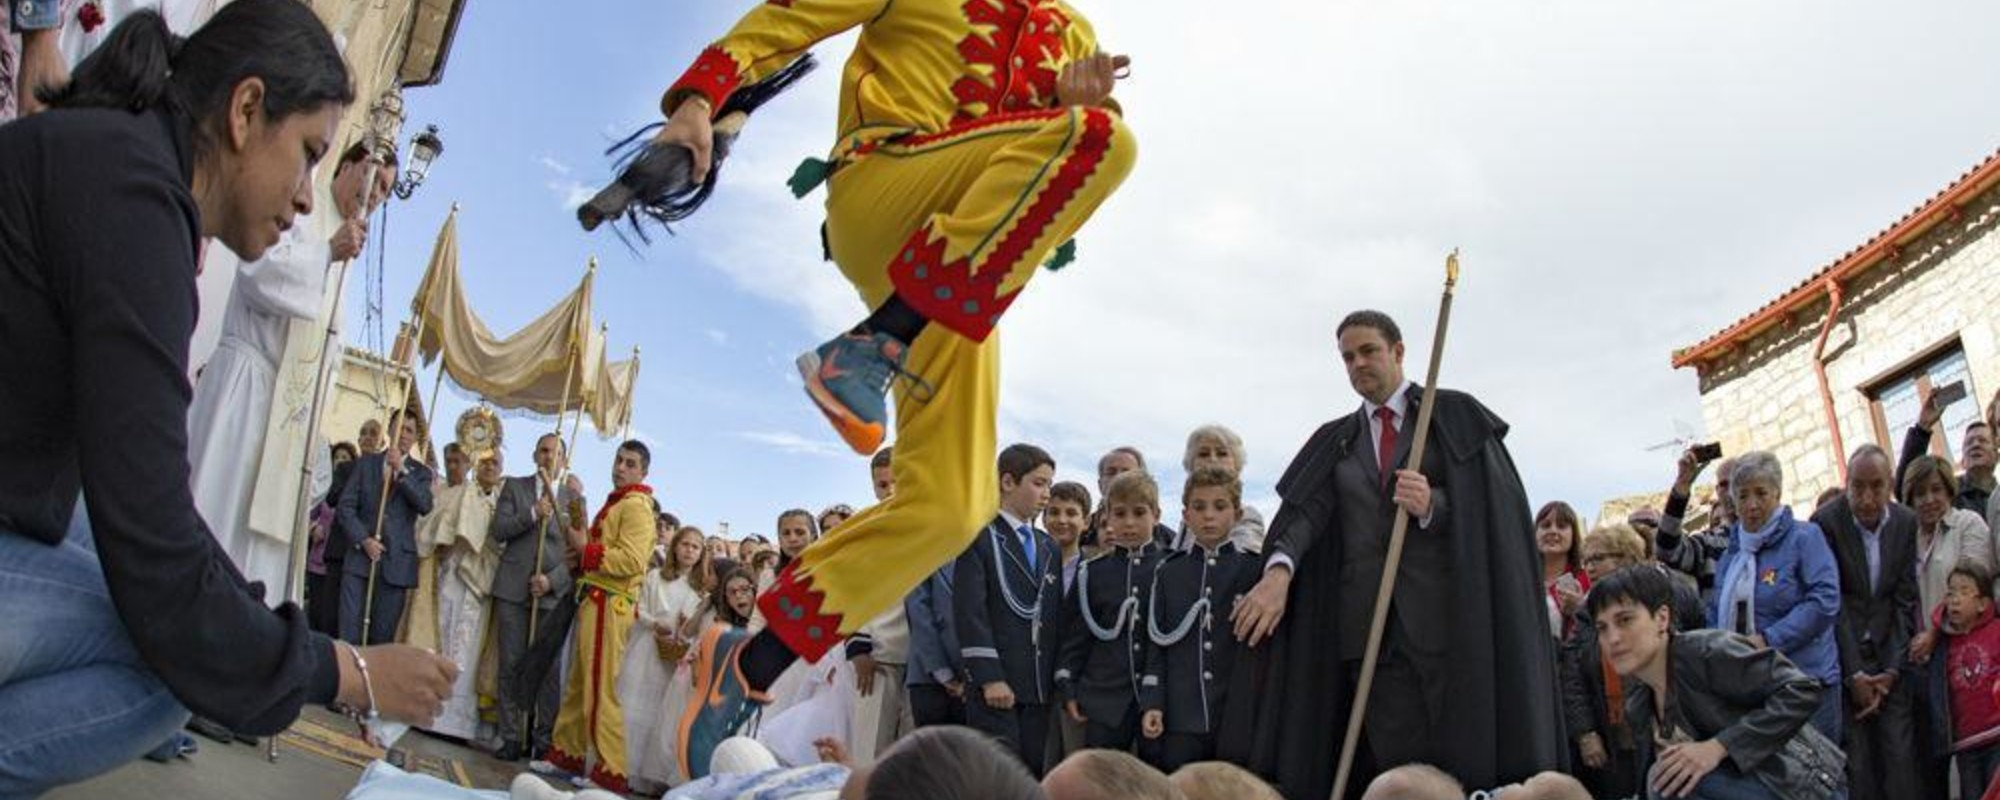 Why Spanish People Dress Up As Demons and Jump Over Babies